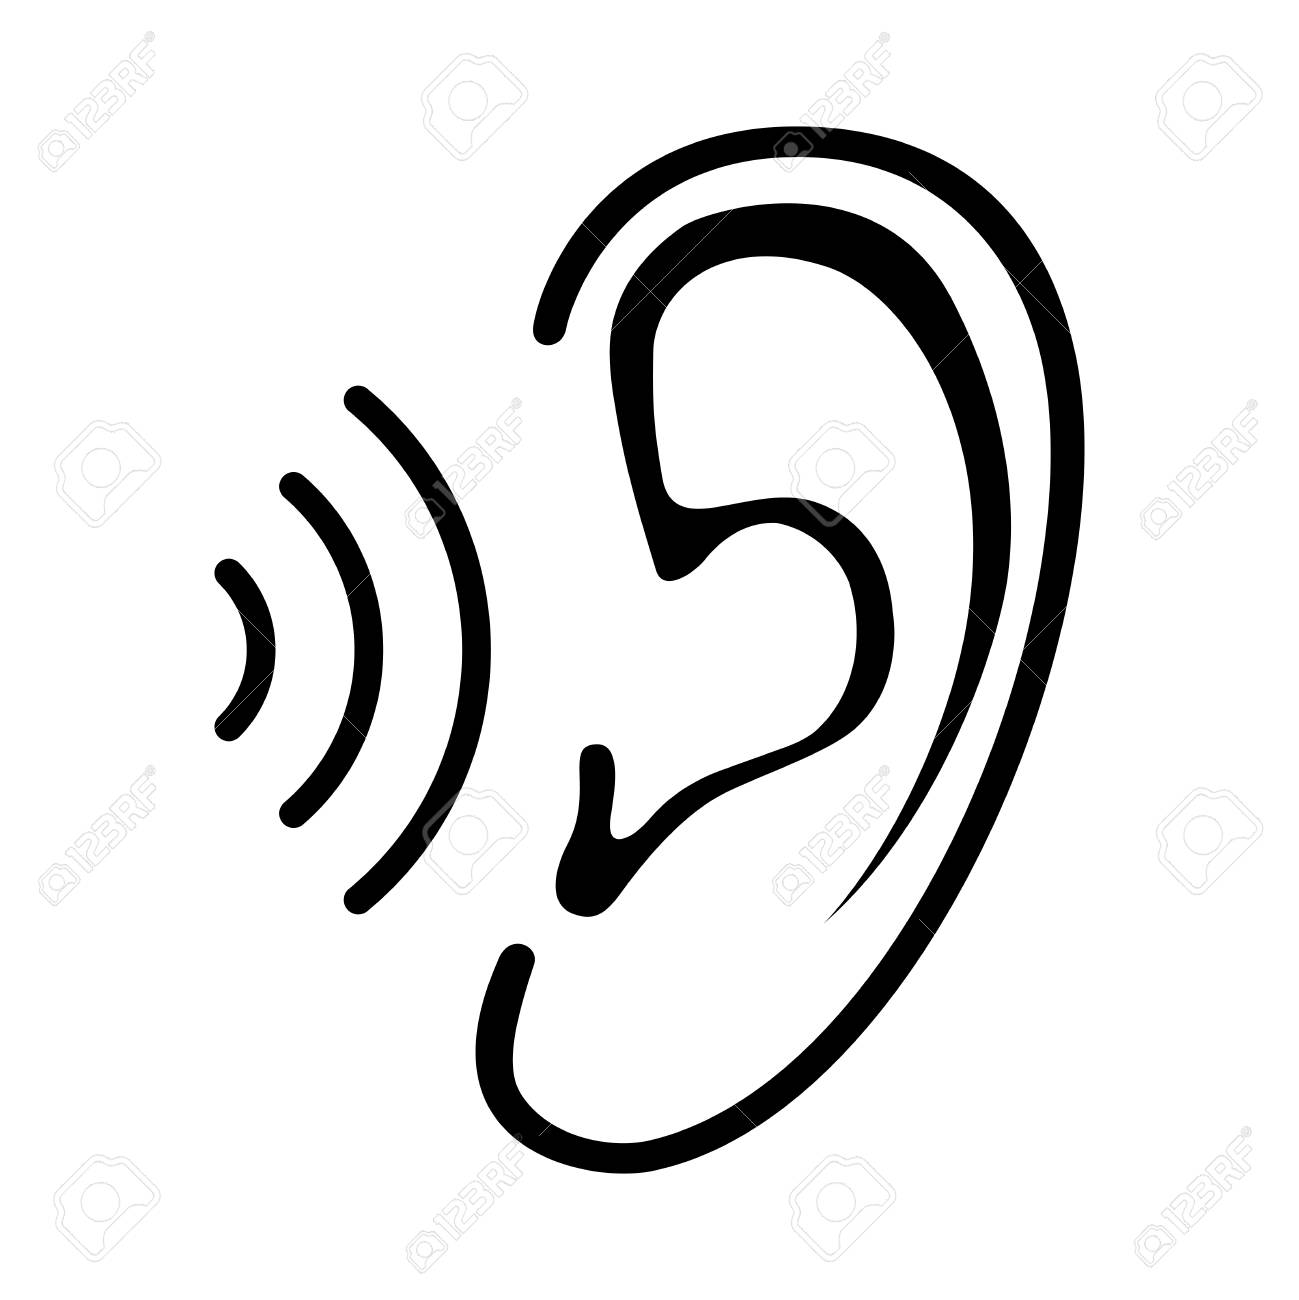 Ear icon with sound wave. Isolated sign on white background. Symbol for graphic and web design. Vector illustration - 117307049